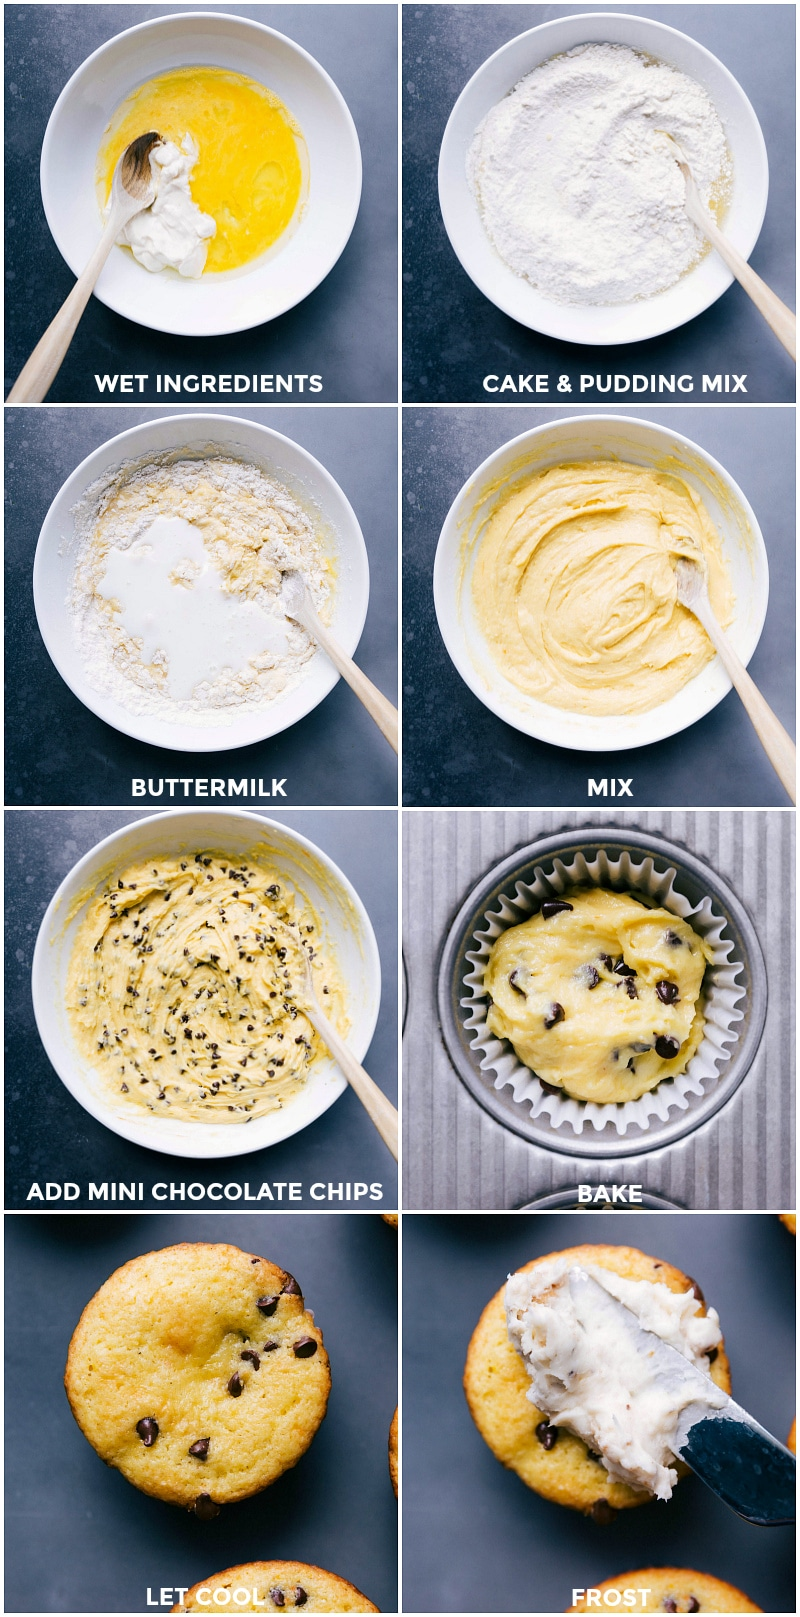 Process shots: mixing the wet ingredients; combining the cake mix and pudding mix; stirring buttermilk into the two mixes; adding mini chocolate chips, spooning dough into muffin cups; cooling once baked; frosting with cream cheese frosting.